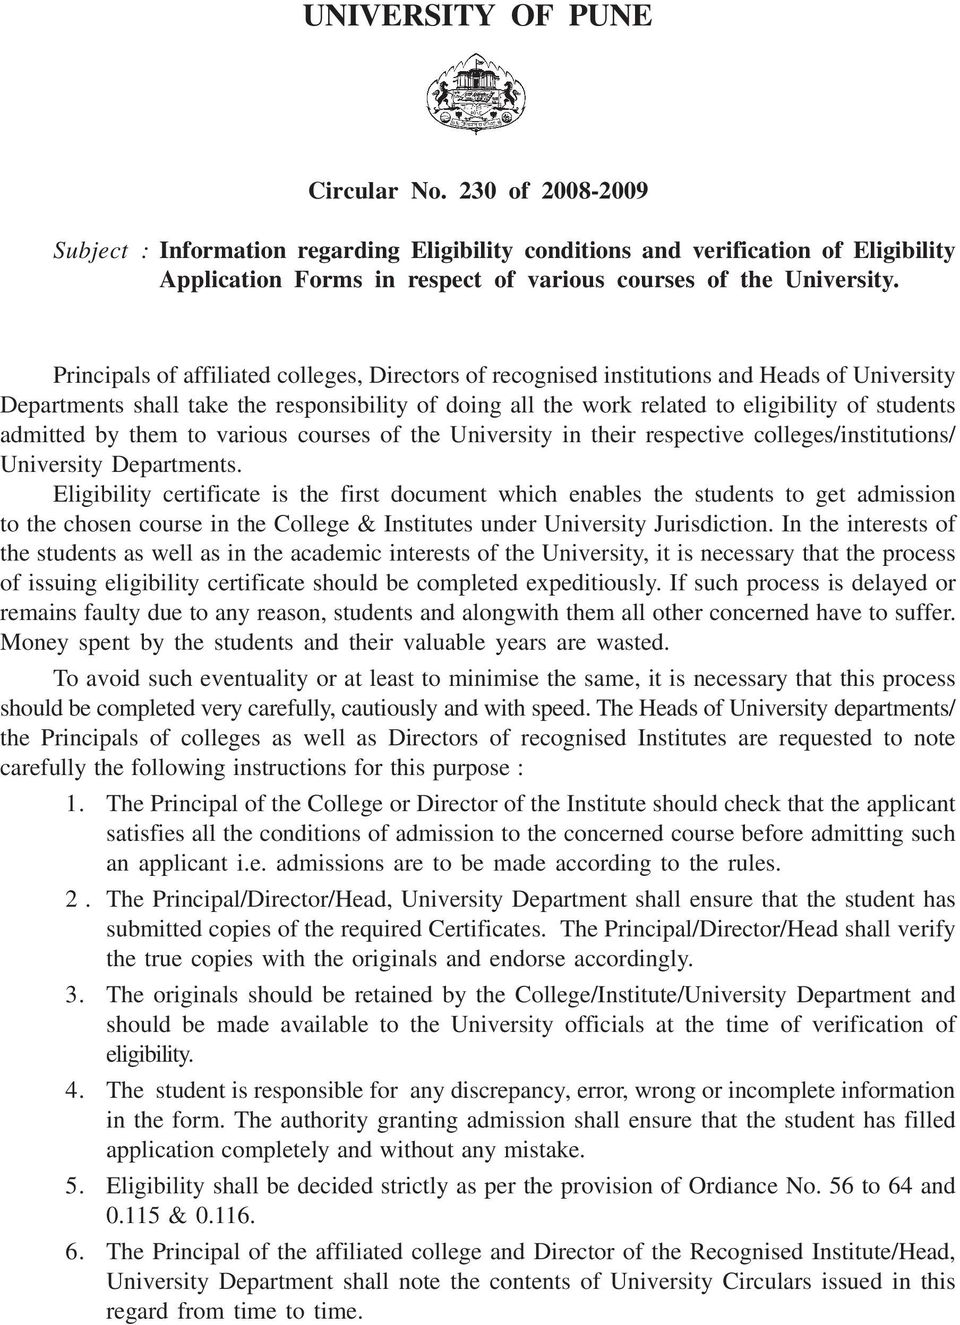 Principals of affiliated colleges, Directors of recognised institutions and Heads of University Departments shall take the responsibility of doing all the work related to eligibility of students